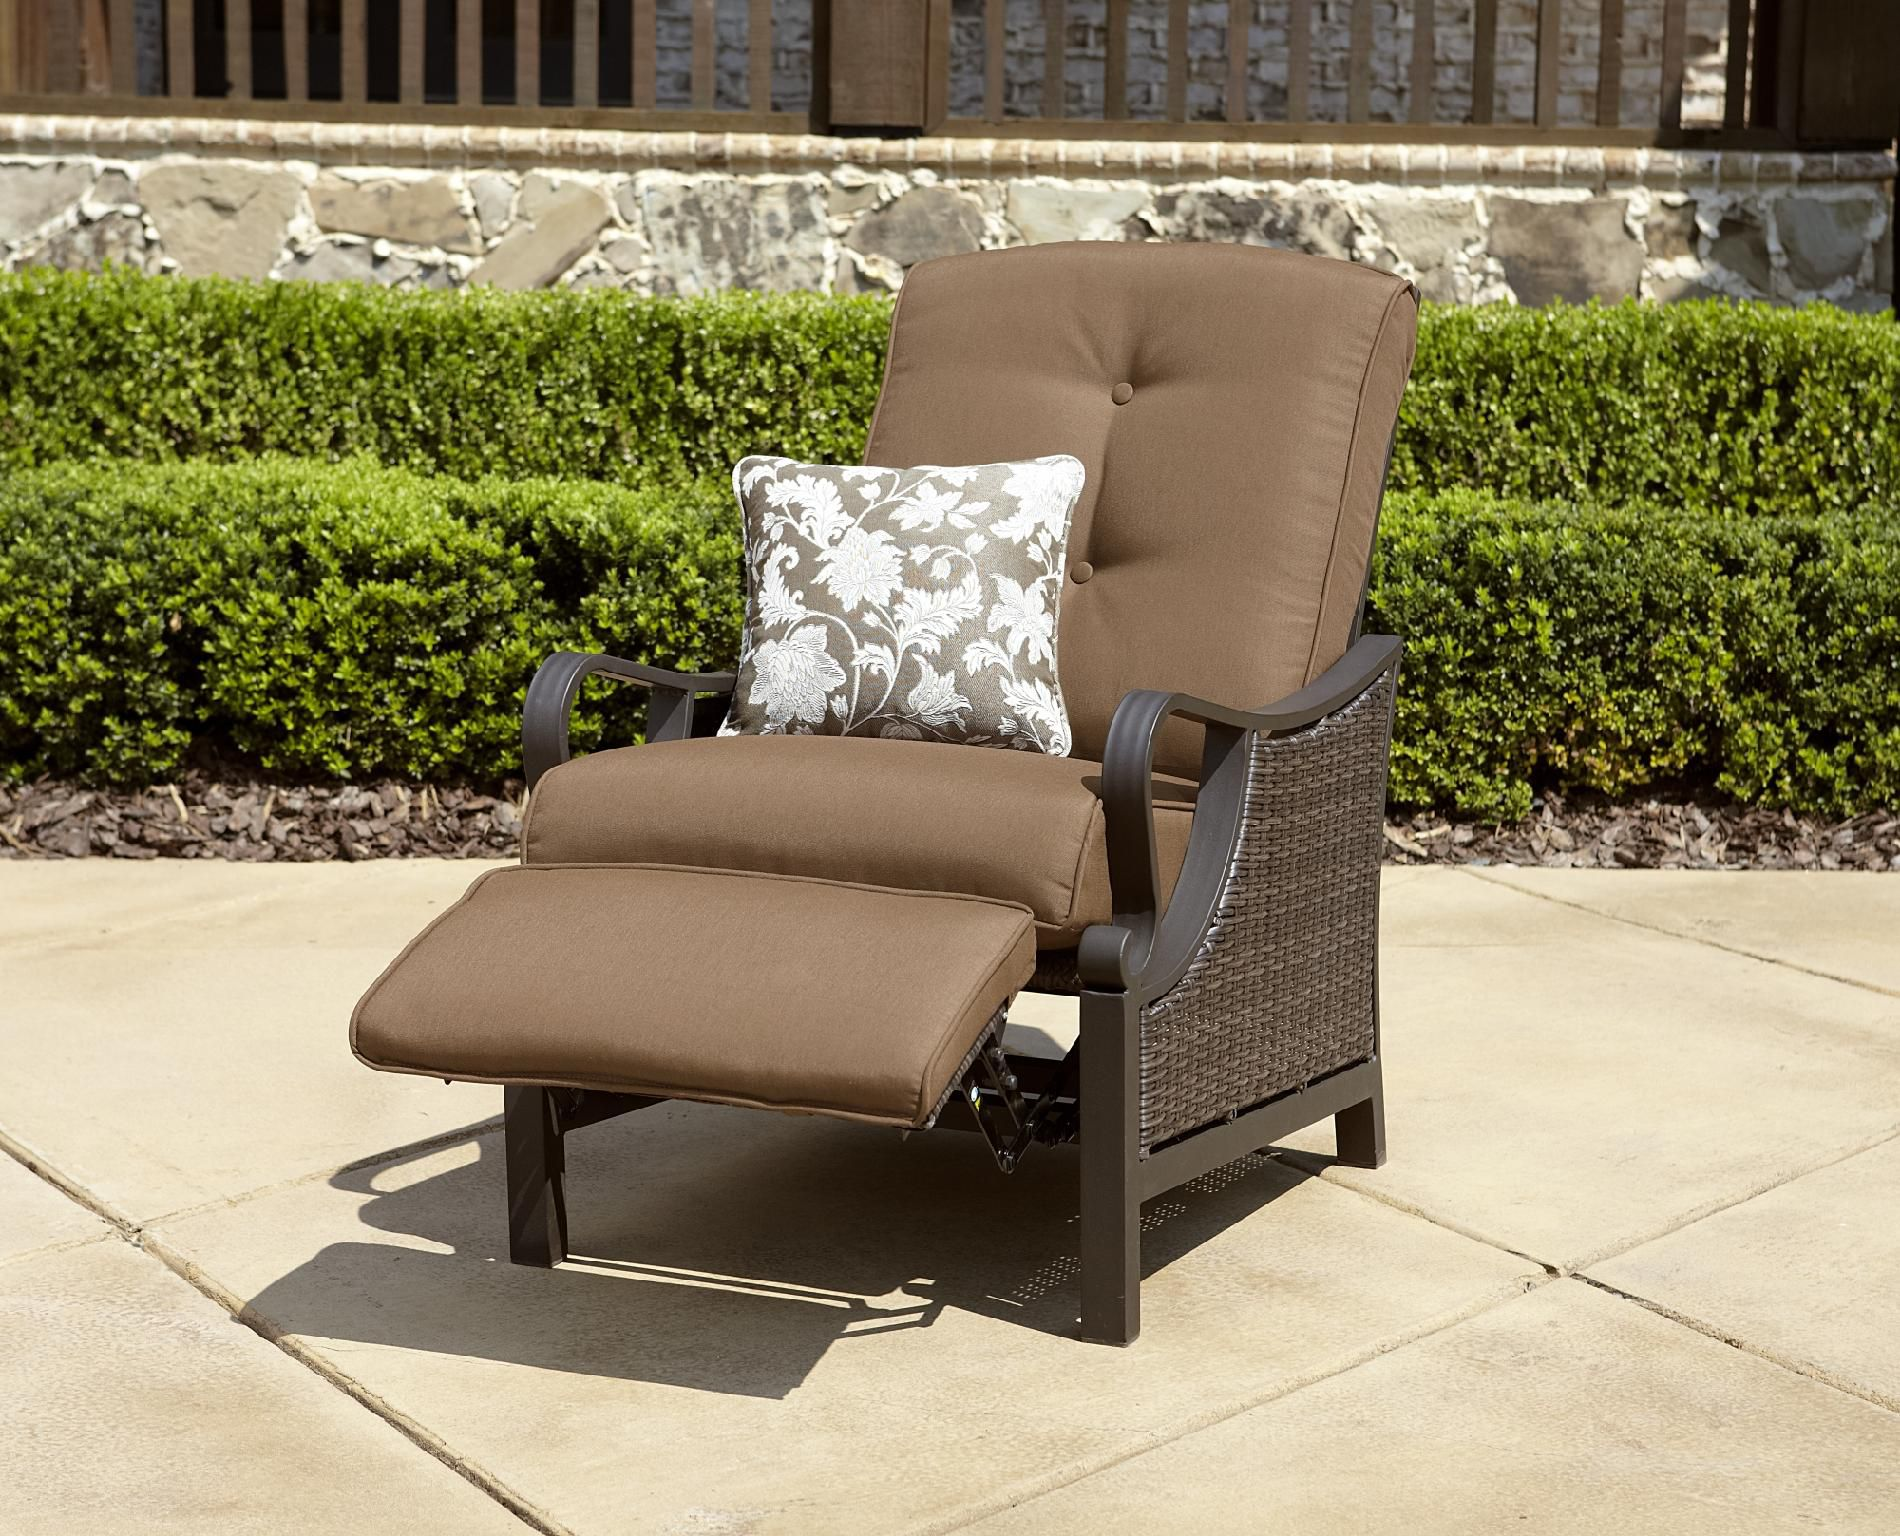 La-Z-Boy Outdoor Dylan Recliner